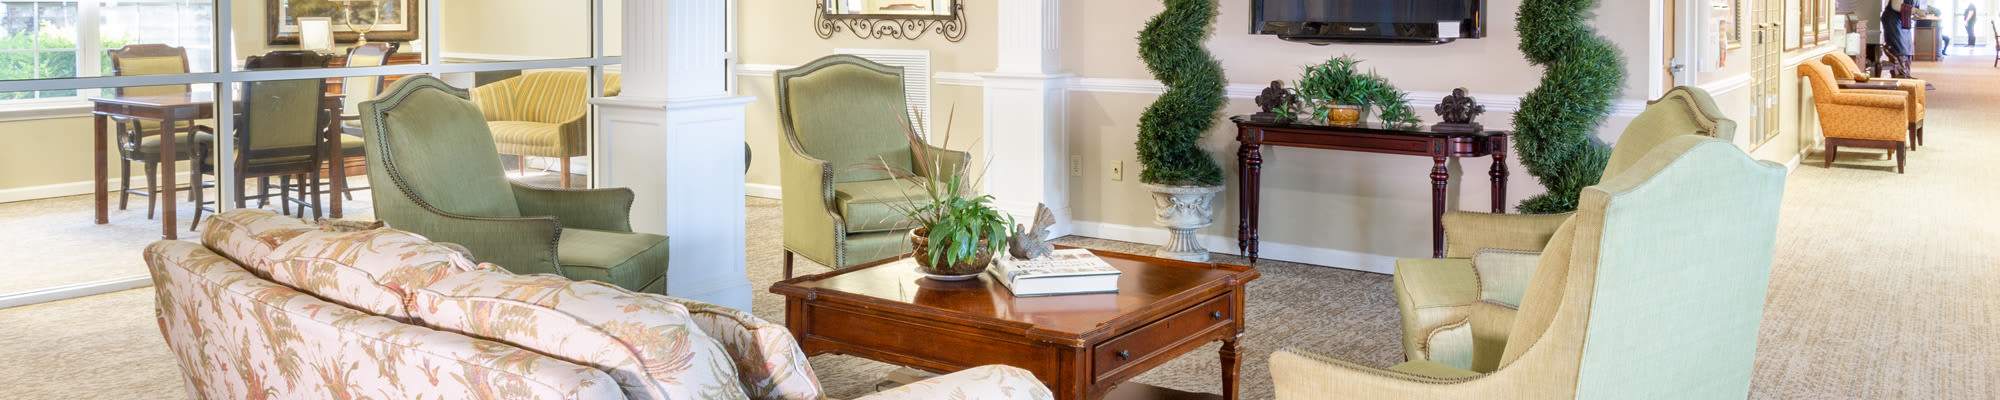 Contact Us at The Harmony Collection at Roanoke - Independent Living in Roanoke, Virginia